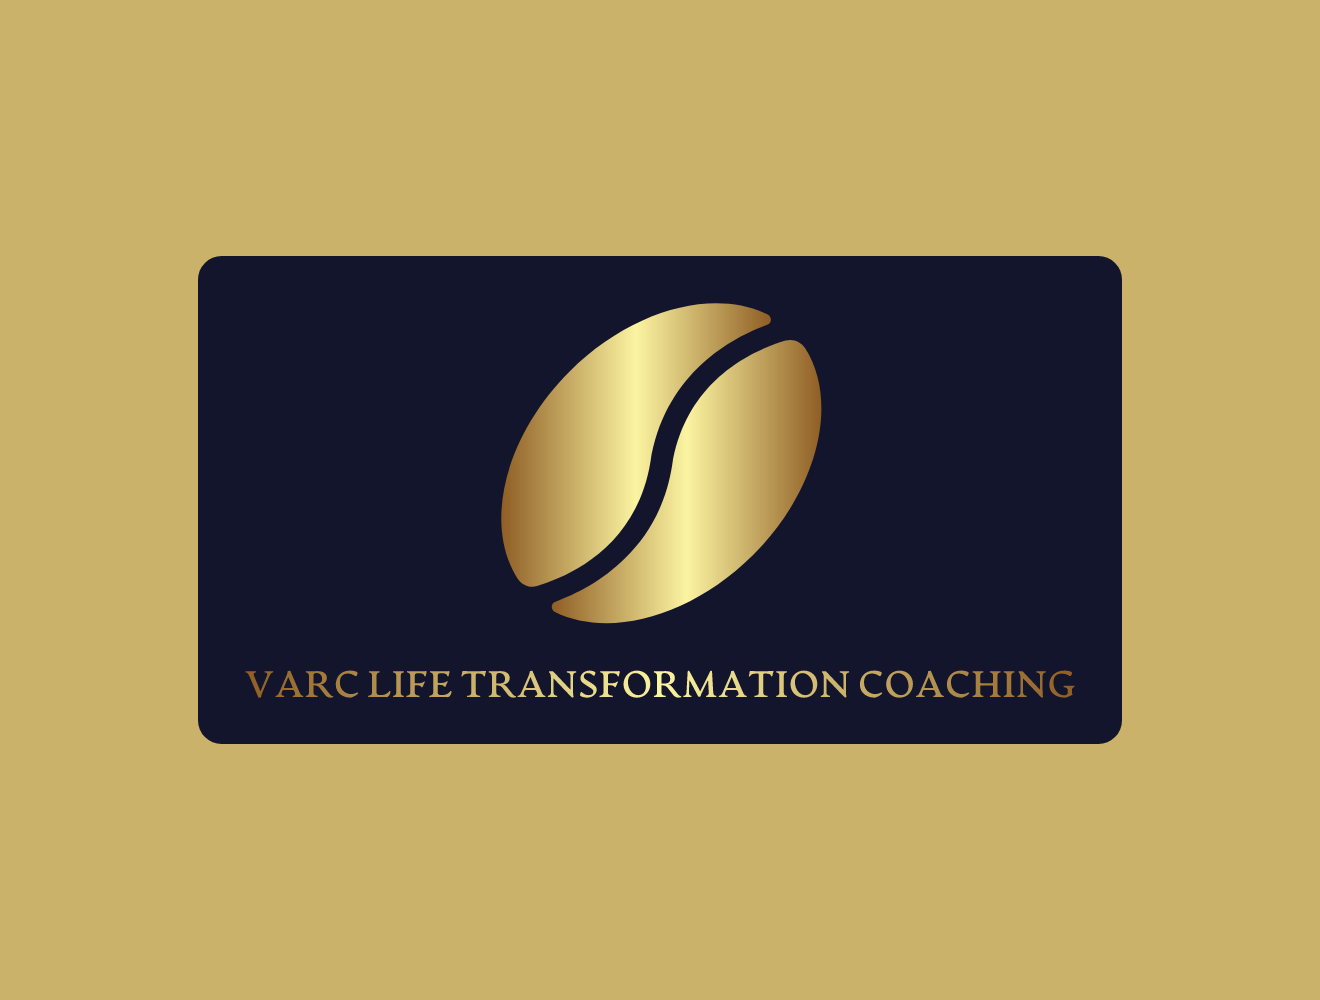 V.a.r.c. Life Transformation Coaching